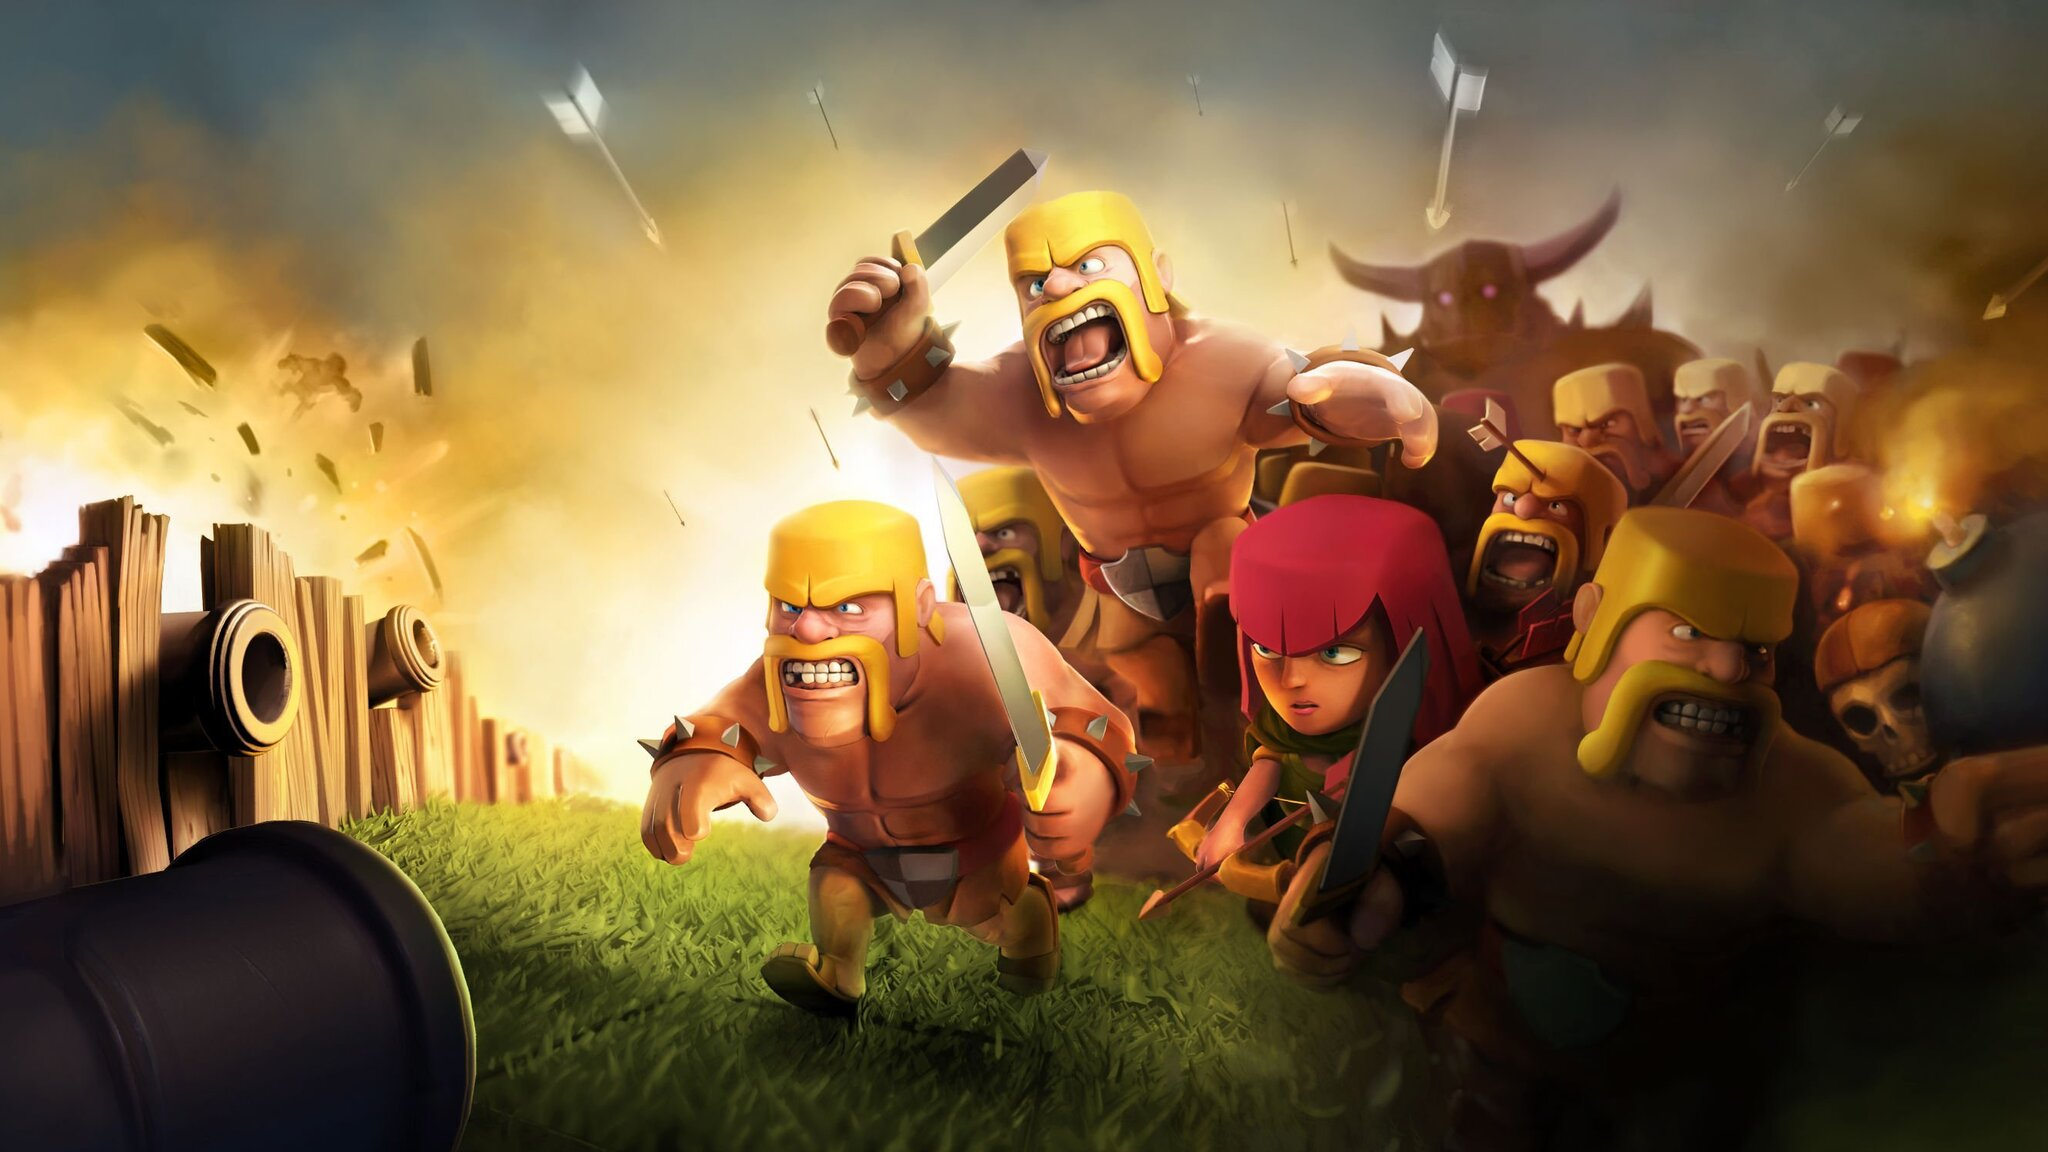 Cute Wallpapers  2048x1152 Clash Of Clans Hd 2048x1152 Resolution Hd 4k